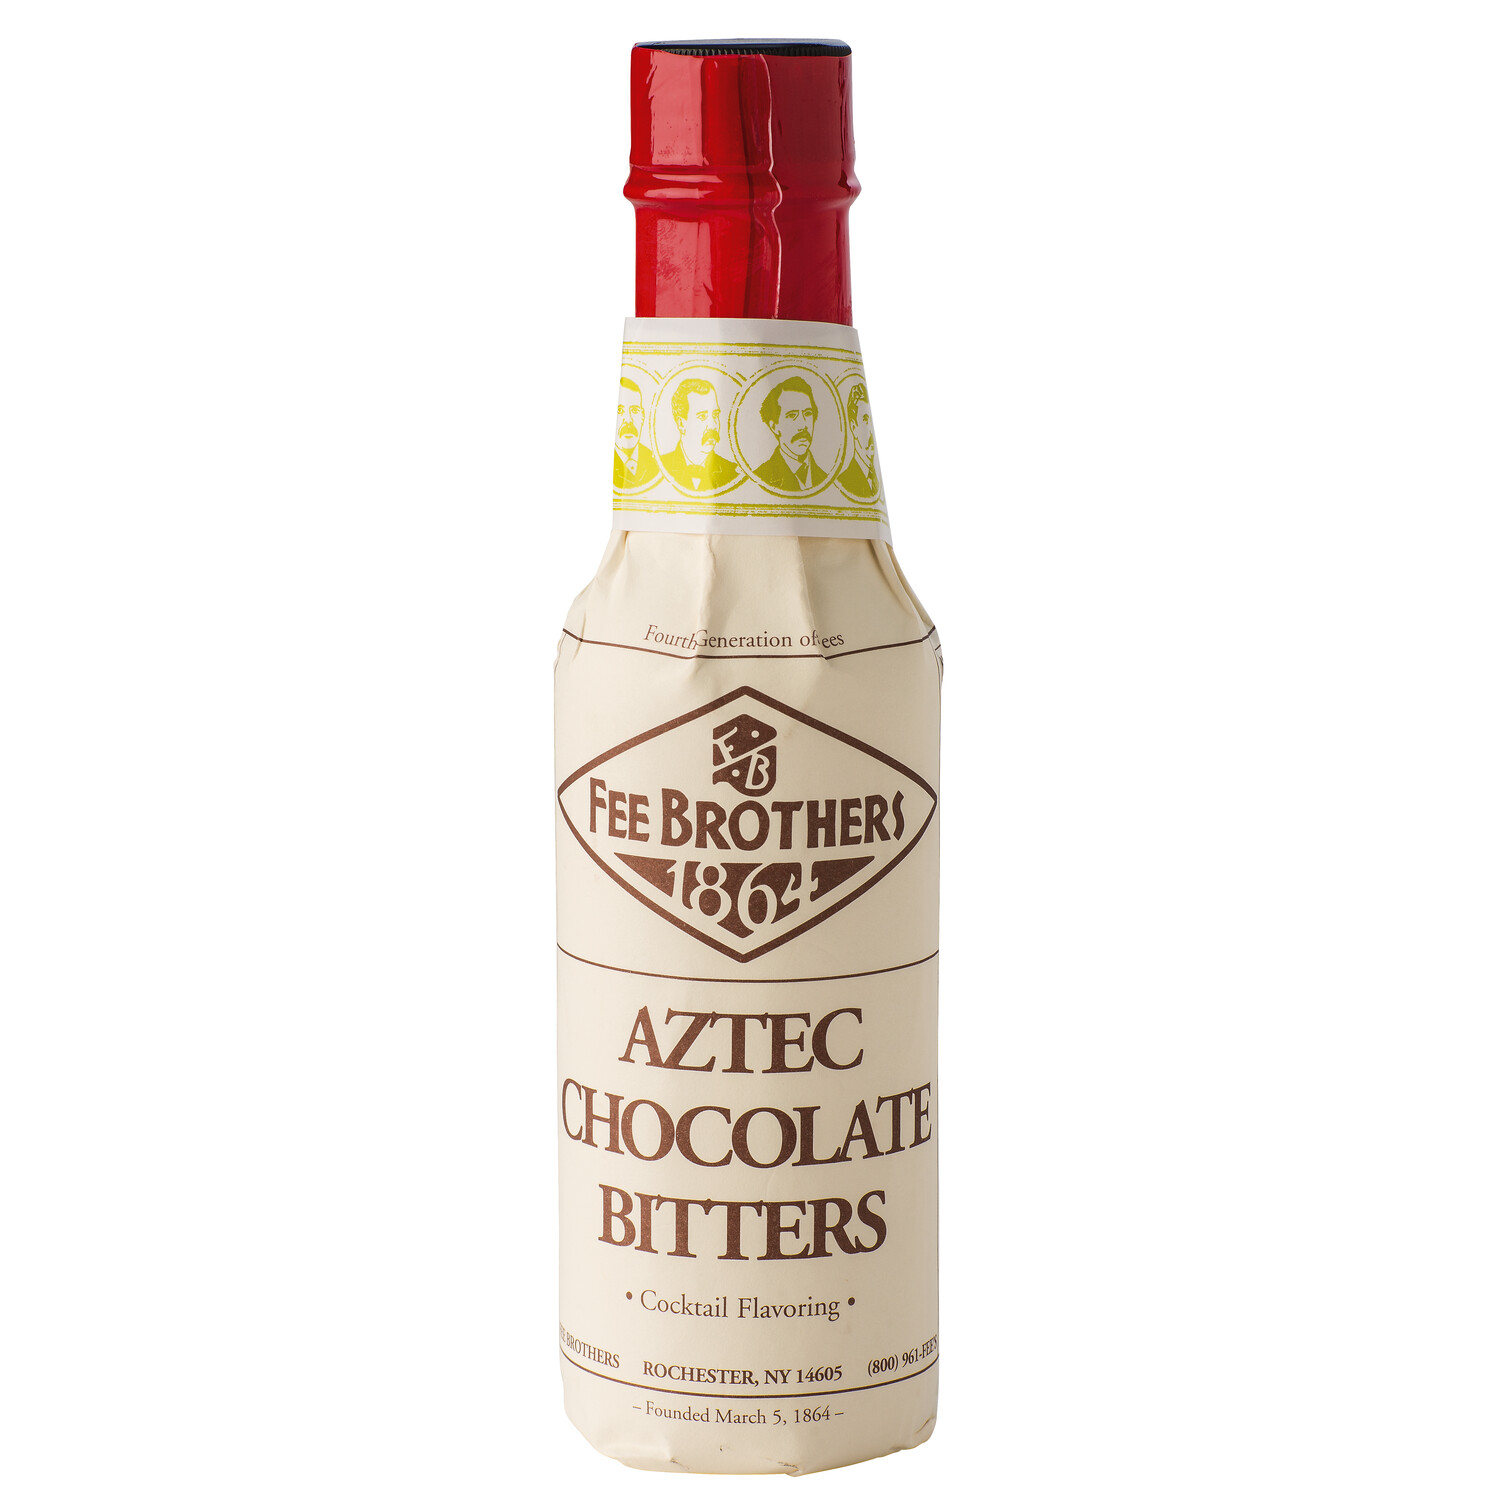 Fee Brothers Aztec Chocolate Bitters 2,55% 0,15l